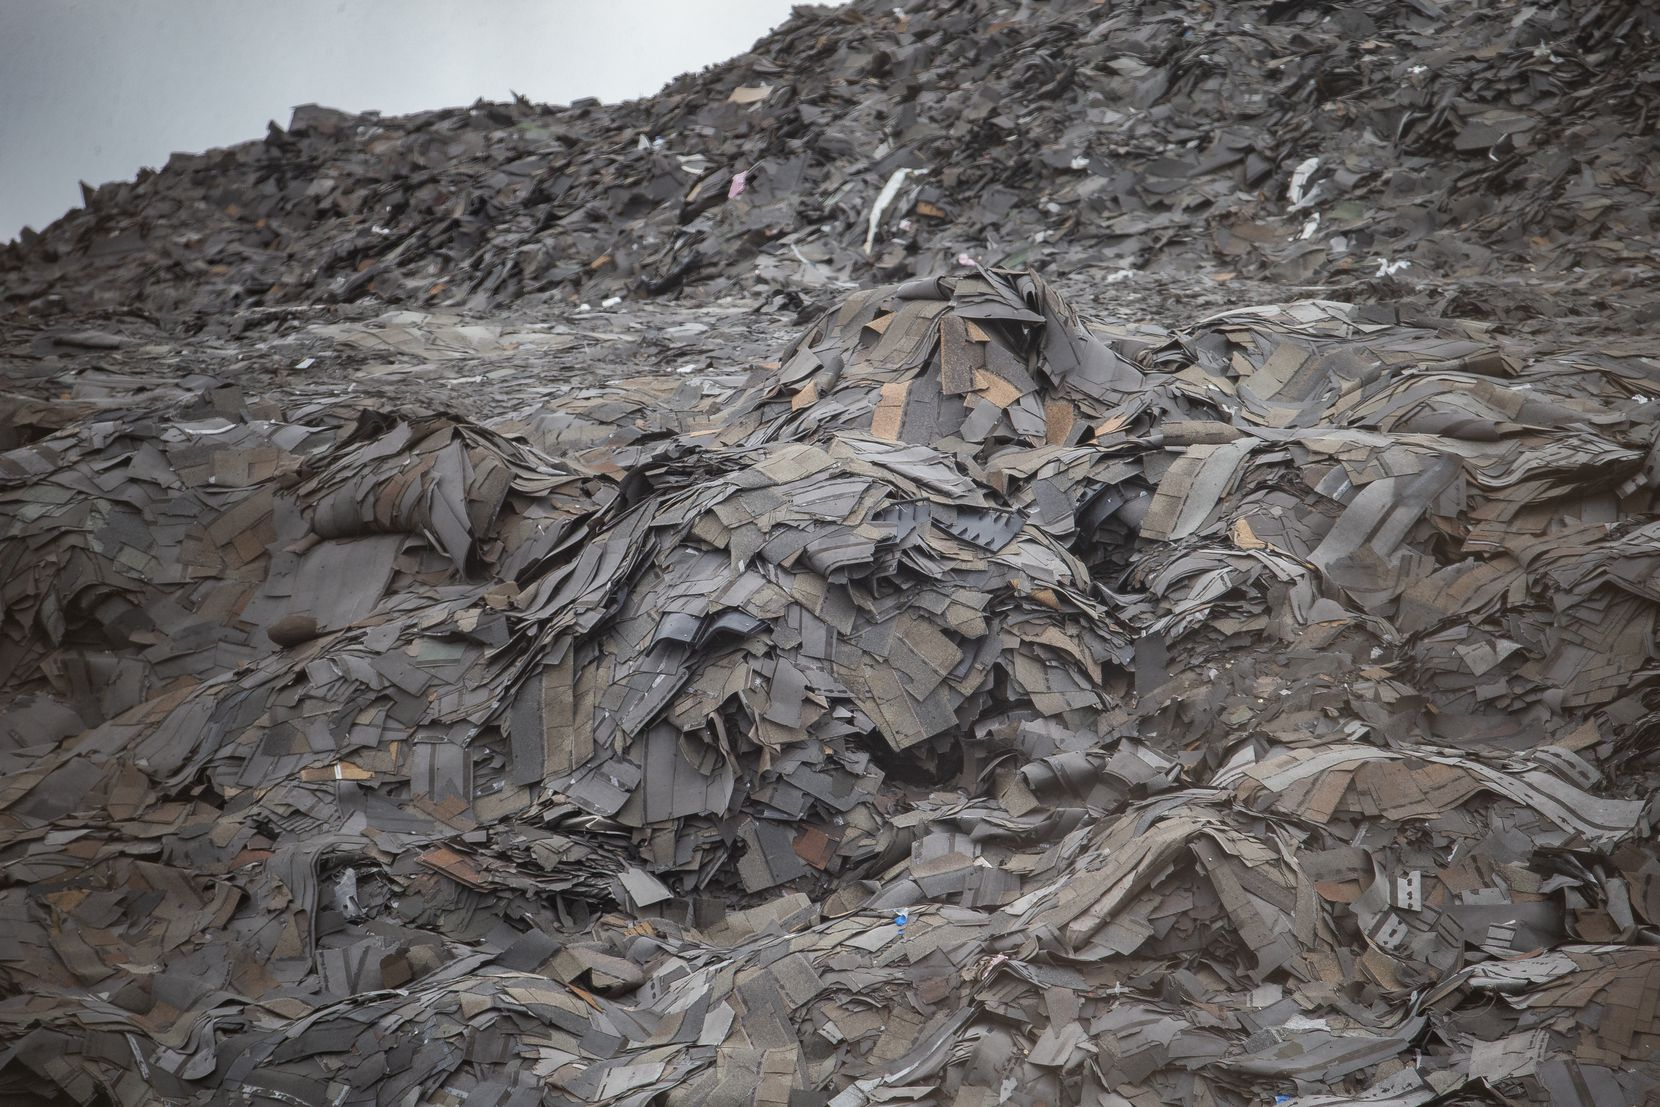 A closeup of the mountain of roofing shingles at what remains of Blue Star Recycling off South Central Expressway in southern Dallas, not too far from Paul Quinn College